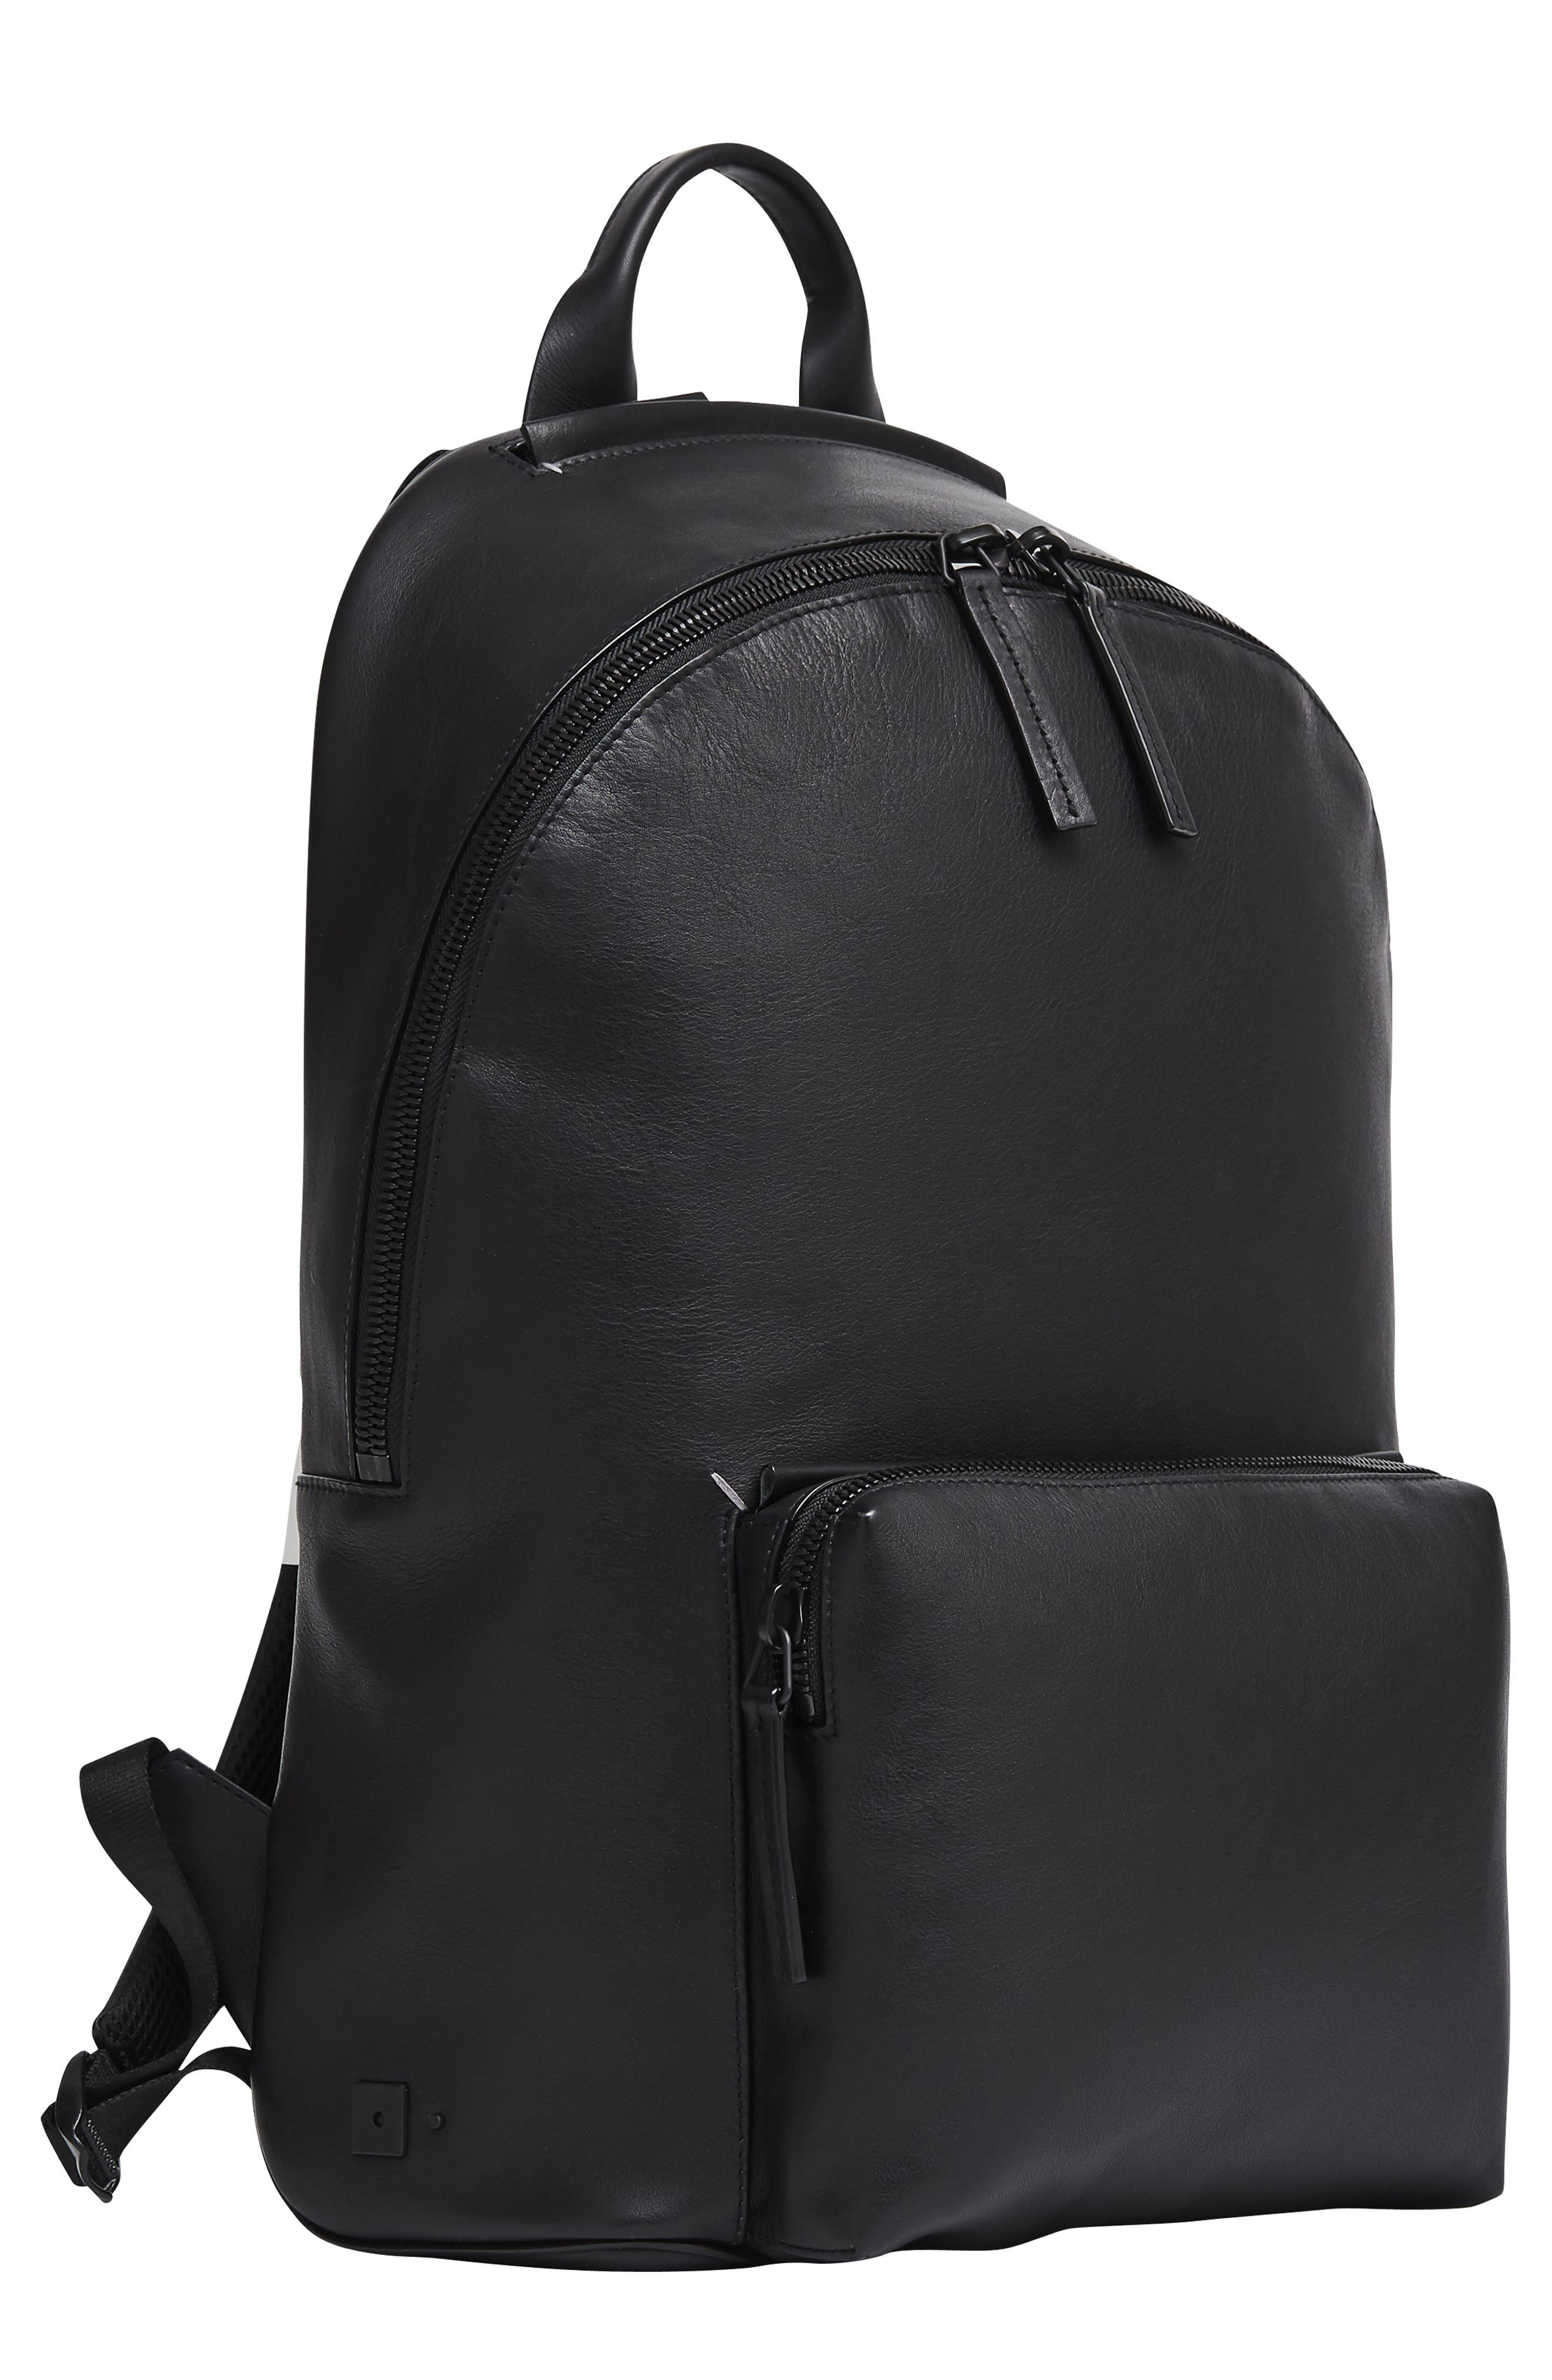 Leather Backpack,                             Main thumbnail 1, color,                             BLACK LEATHER